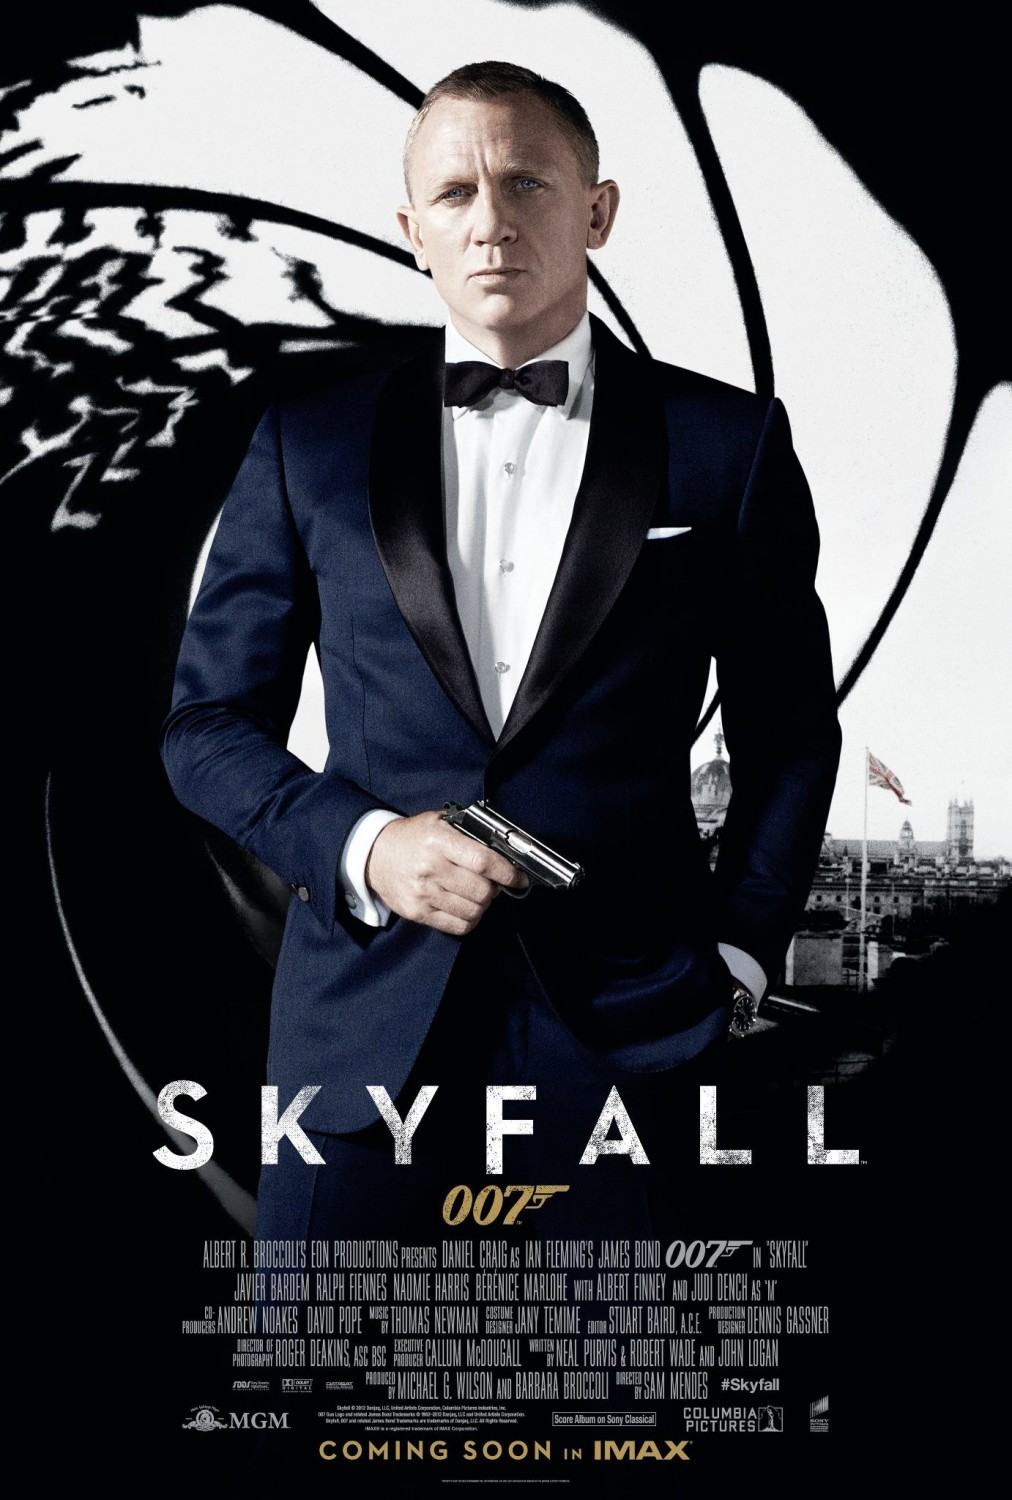 James Bond Skyfall | Teaser Trailer